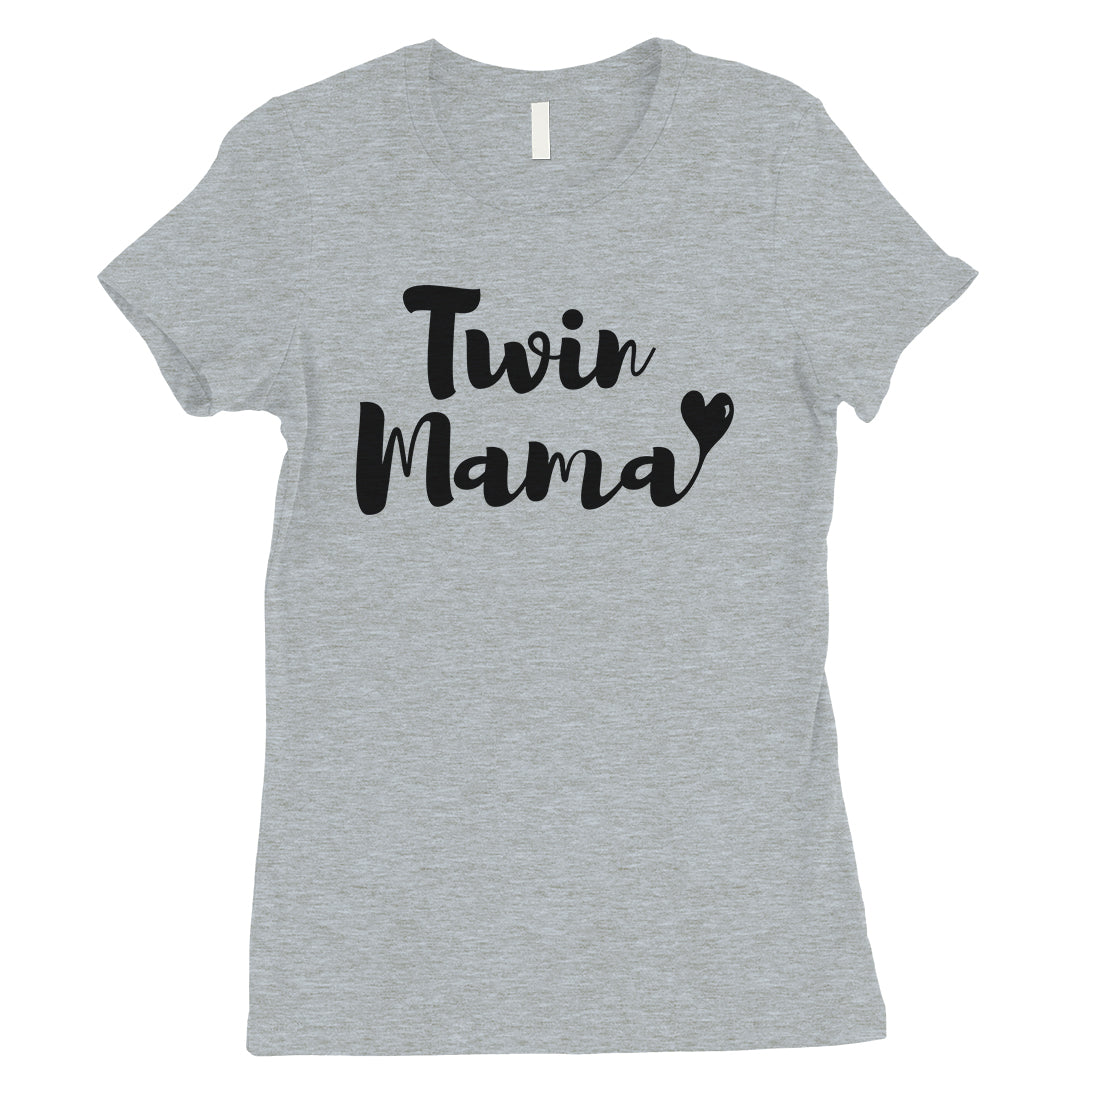 Women/'s Funny Statement Black Cotton T-shirt World/'s Okayest Sister